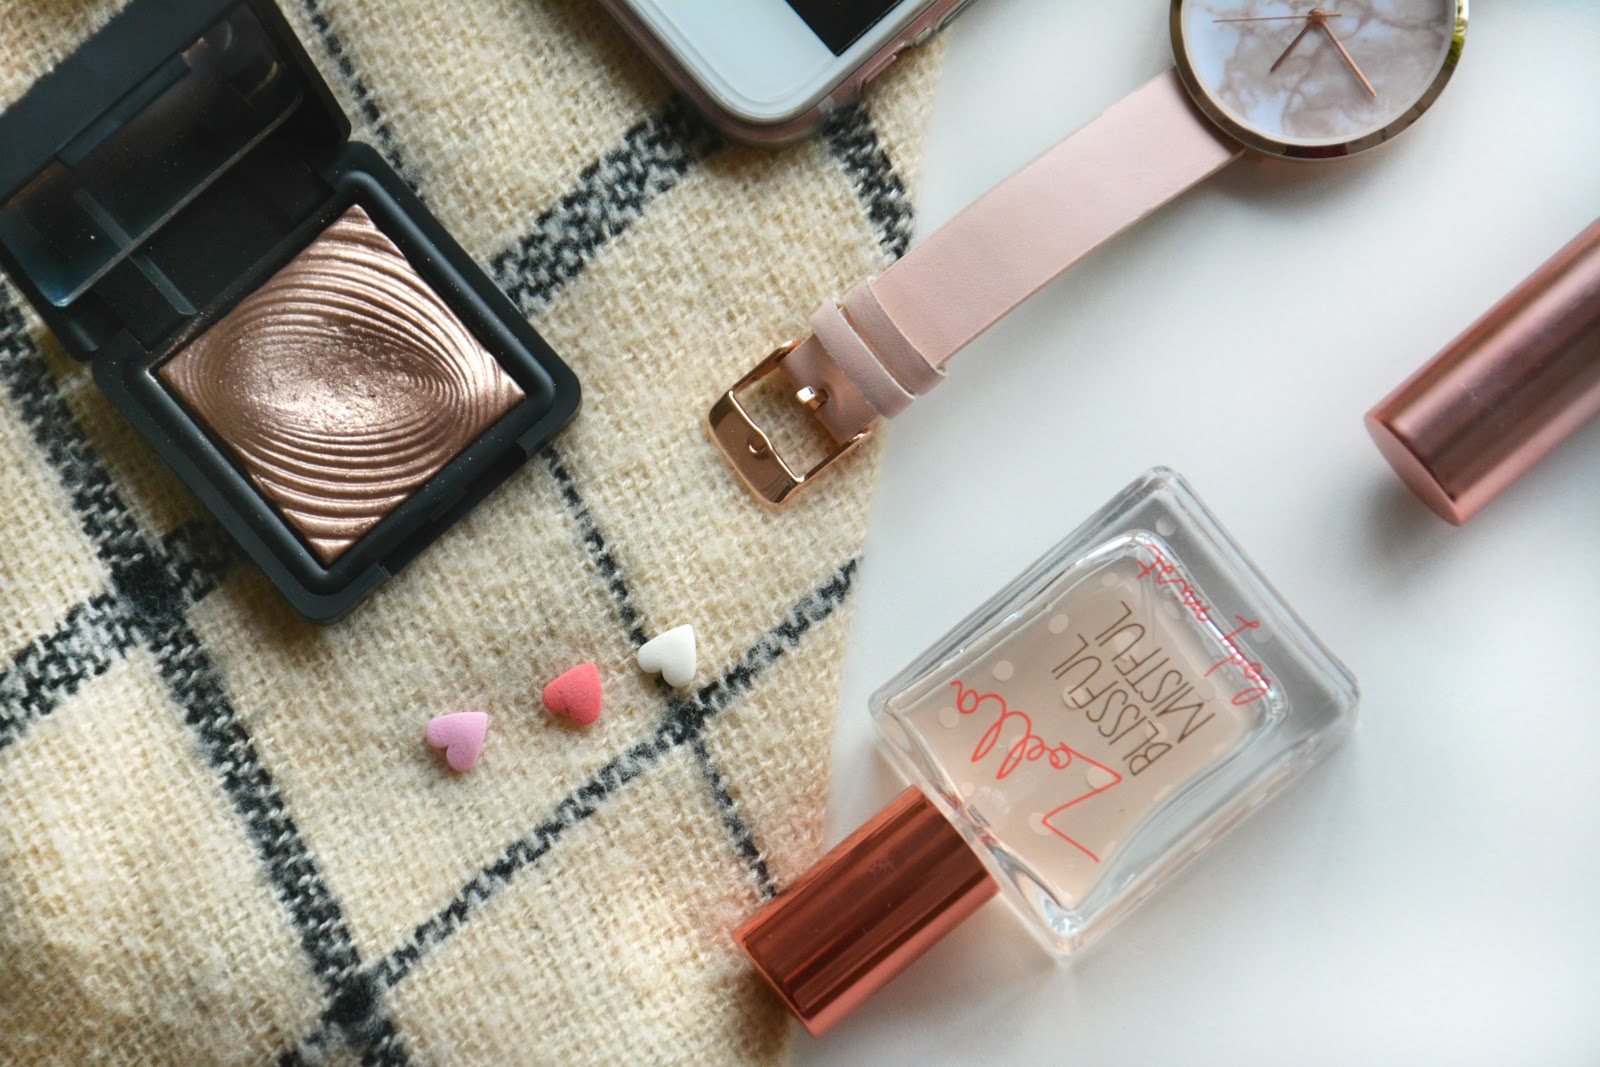 Kiko Eyeshadow, Asos Watch, Zara Scarf, Zoella Blissful Mistful Body Mist